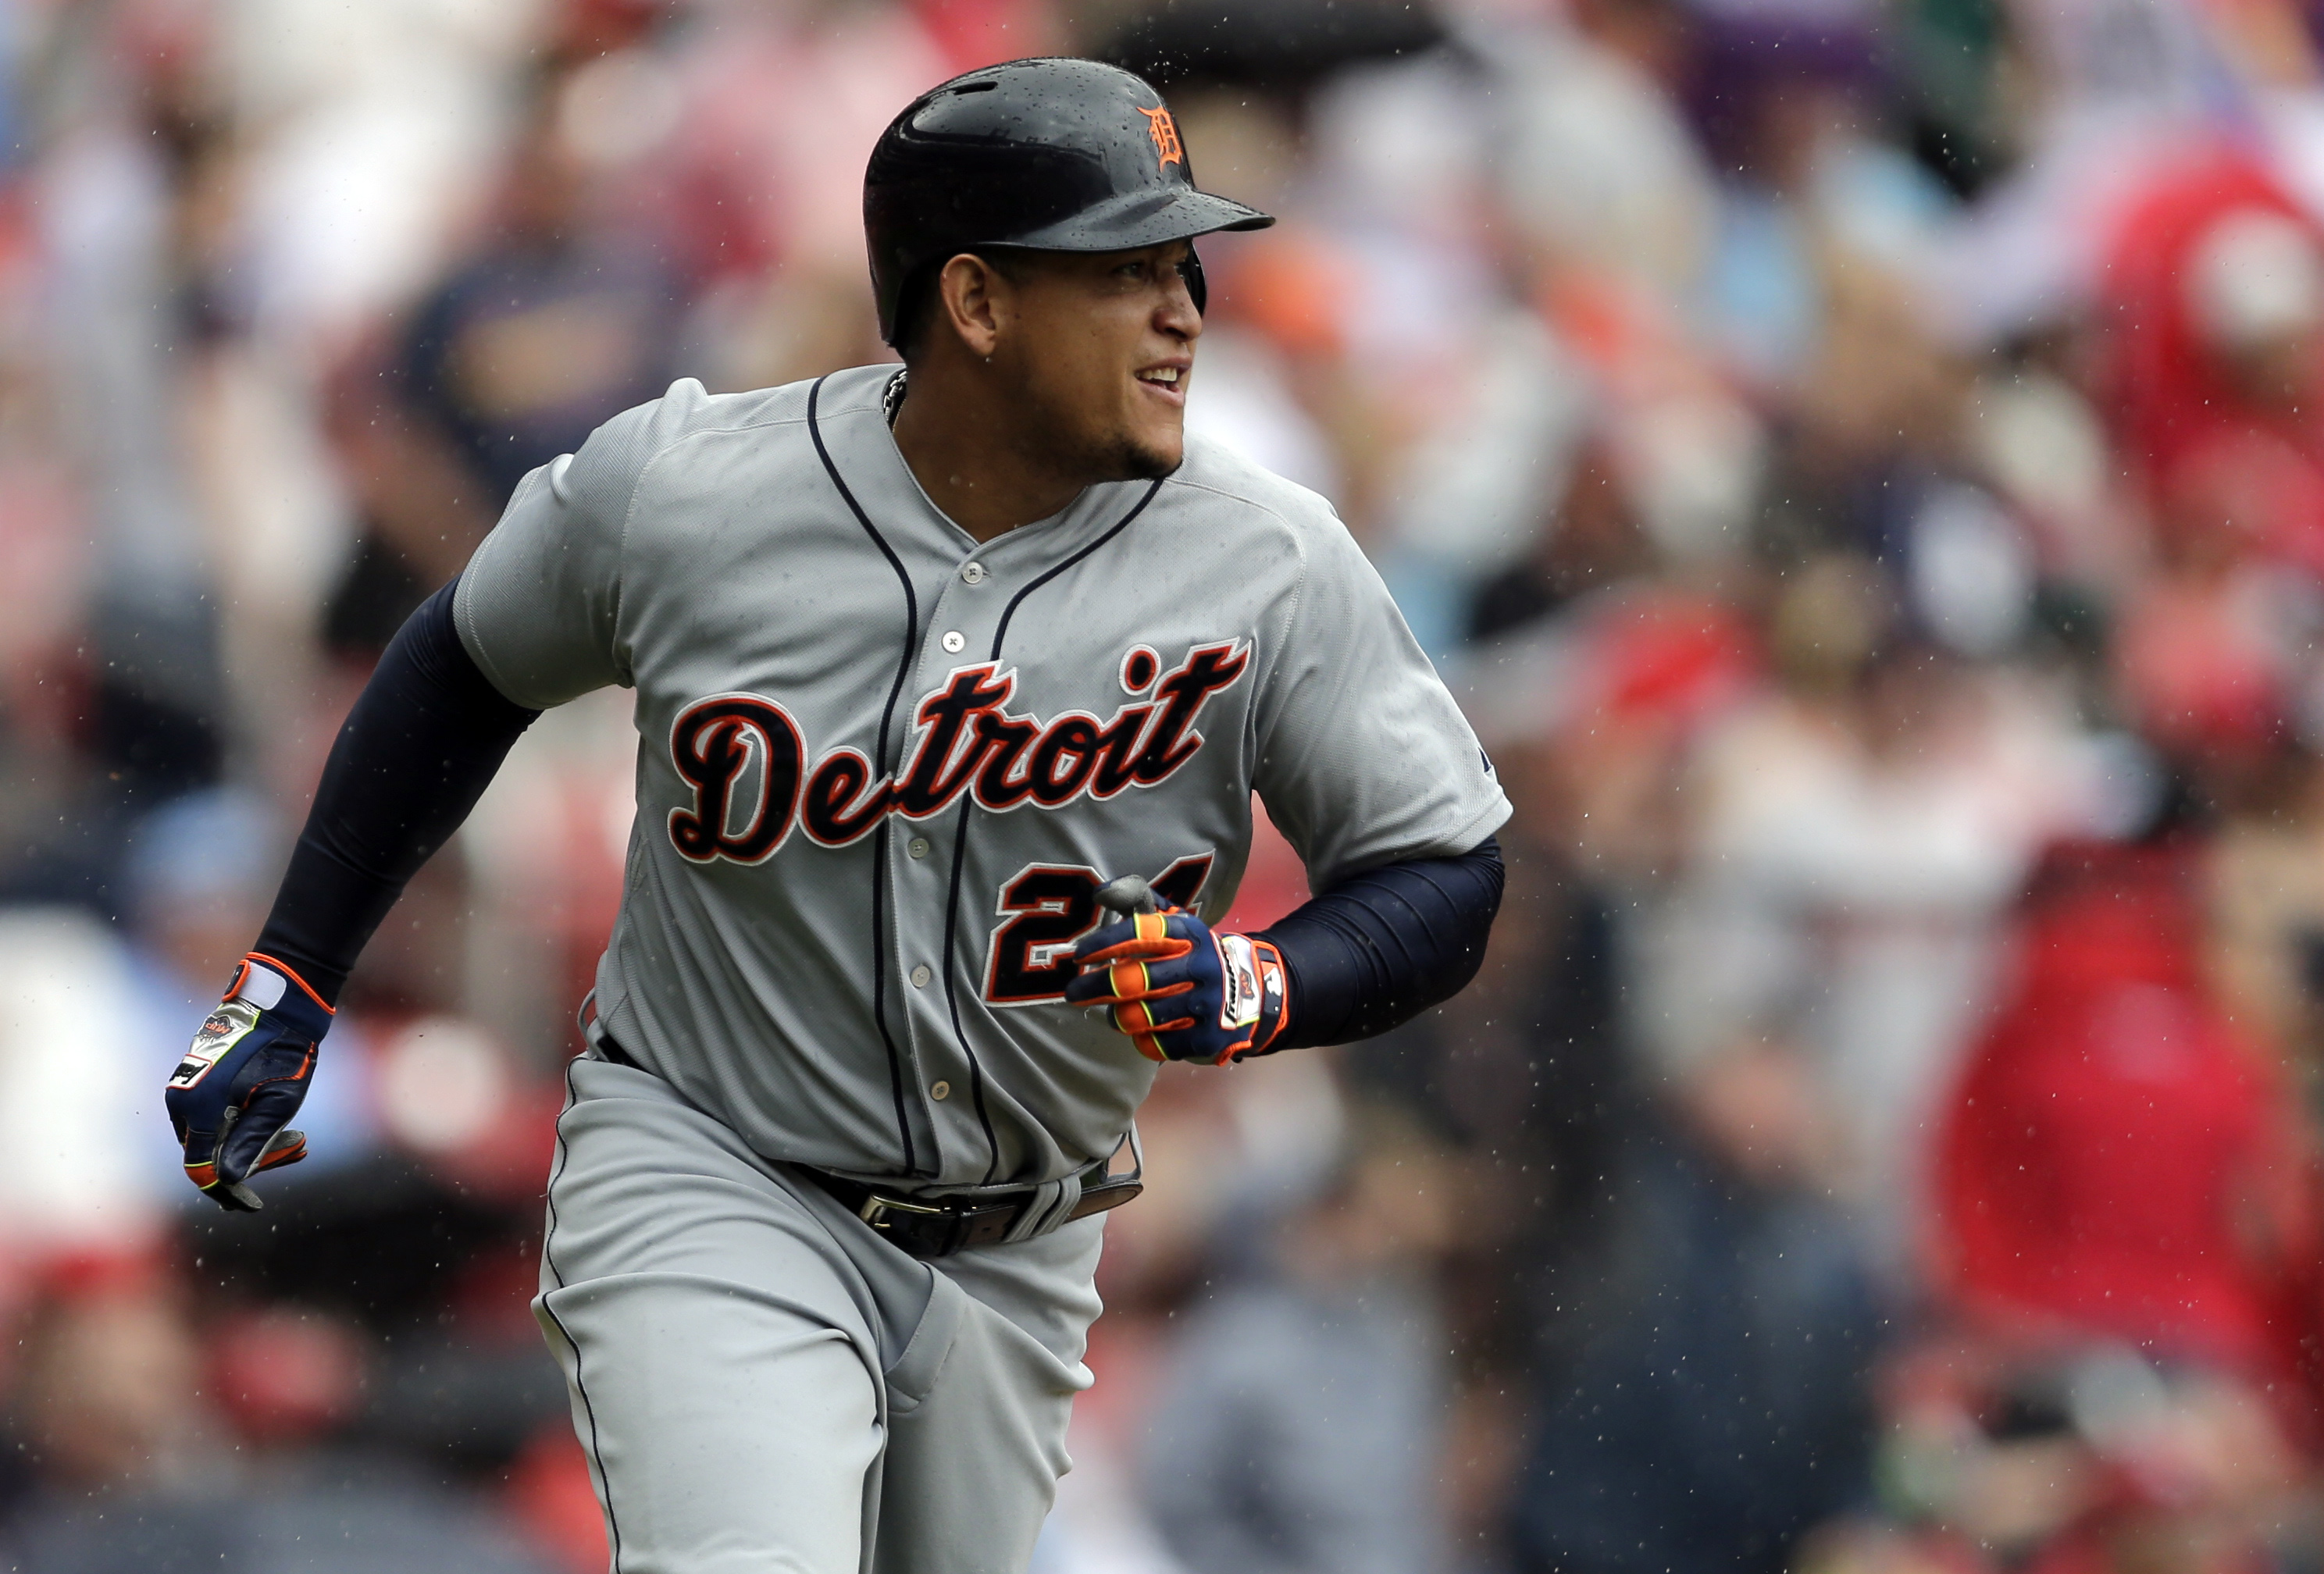 Detroit Tigers' Miguel Cabrera rounds the bases after hitting a solo home run during the first inning of a baseball game against the St. Louis Cardinals, Saturday, May 16, 2015, in St. Louis. (AP Photo/Jeff Roberson)